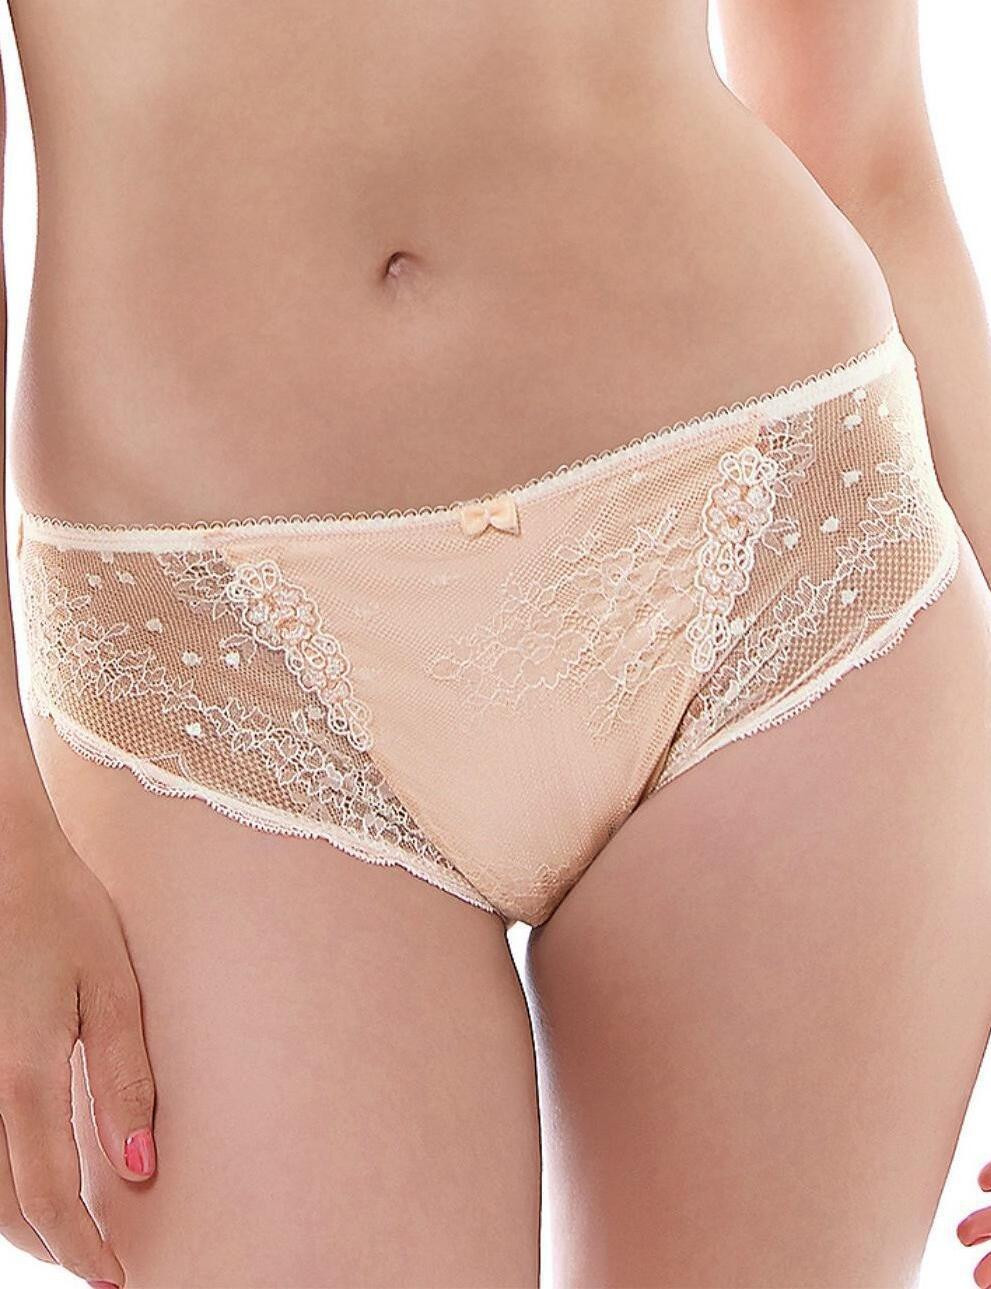 b7f7f156c3 Fantasie Lingerie Ivana 9025 Brief Knickers In Oyster - Oyster